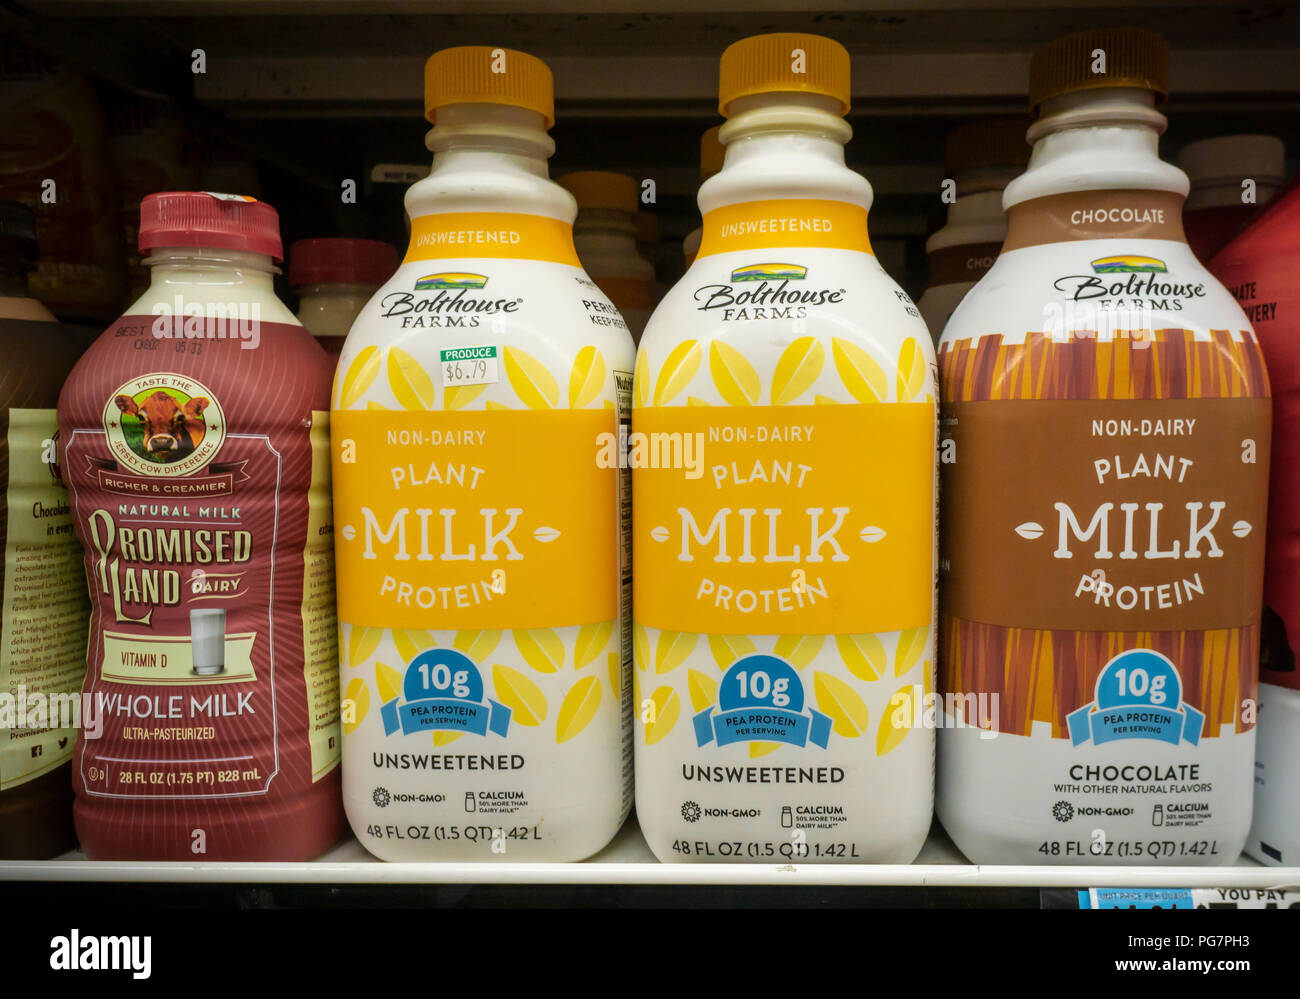 Bottles of Bolthouse Farms brand plant-based 'milk' are seen in a supermarket in New York on Friday, August 17, 2018. Bolthouse Farms is a brand of the Campbell Soup Co. purchased in 2012. (© Richard B. Levine) - Stock Image